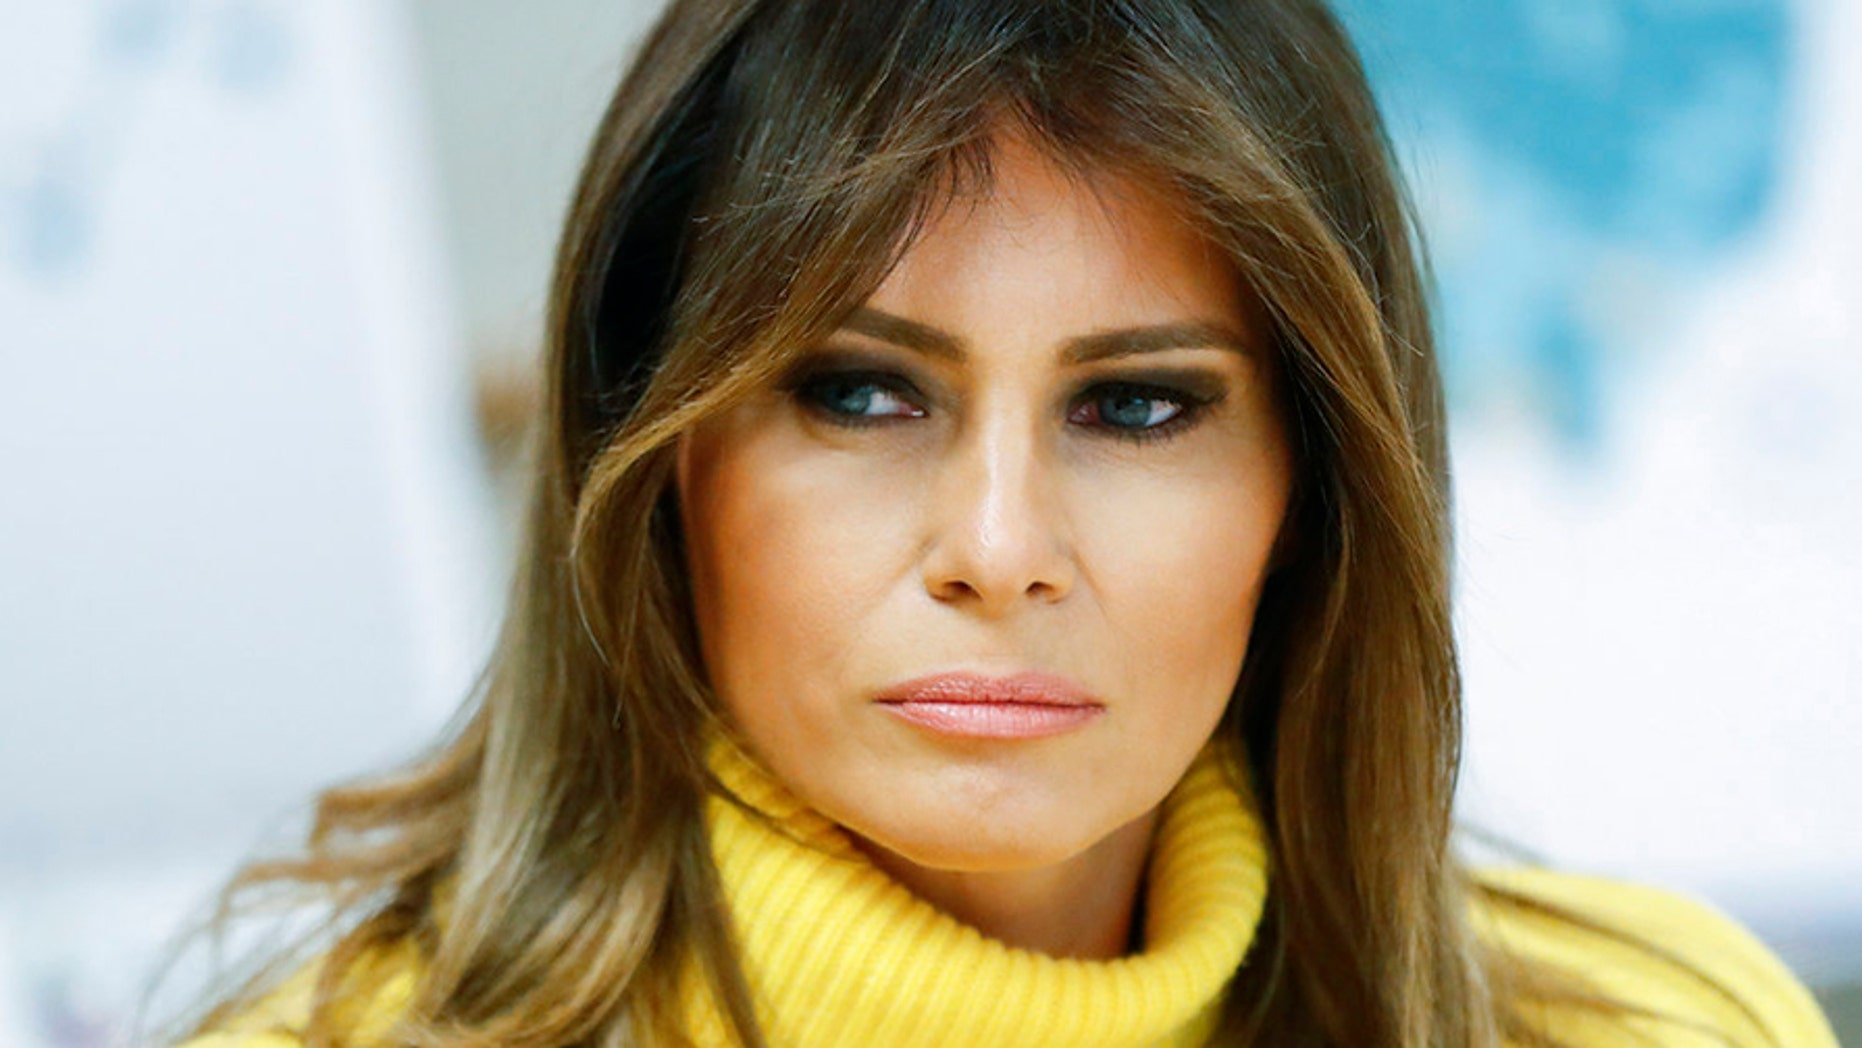 Melania Trump is hosting executives from major online and social media companies to discuss cyberbullying and internet safety, more than a year after saying that would be her issue as first lady.